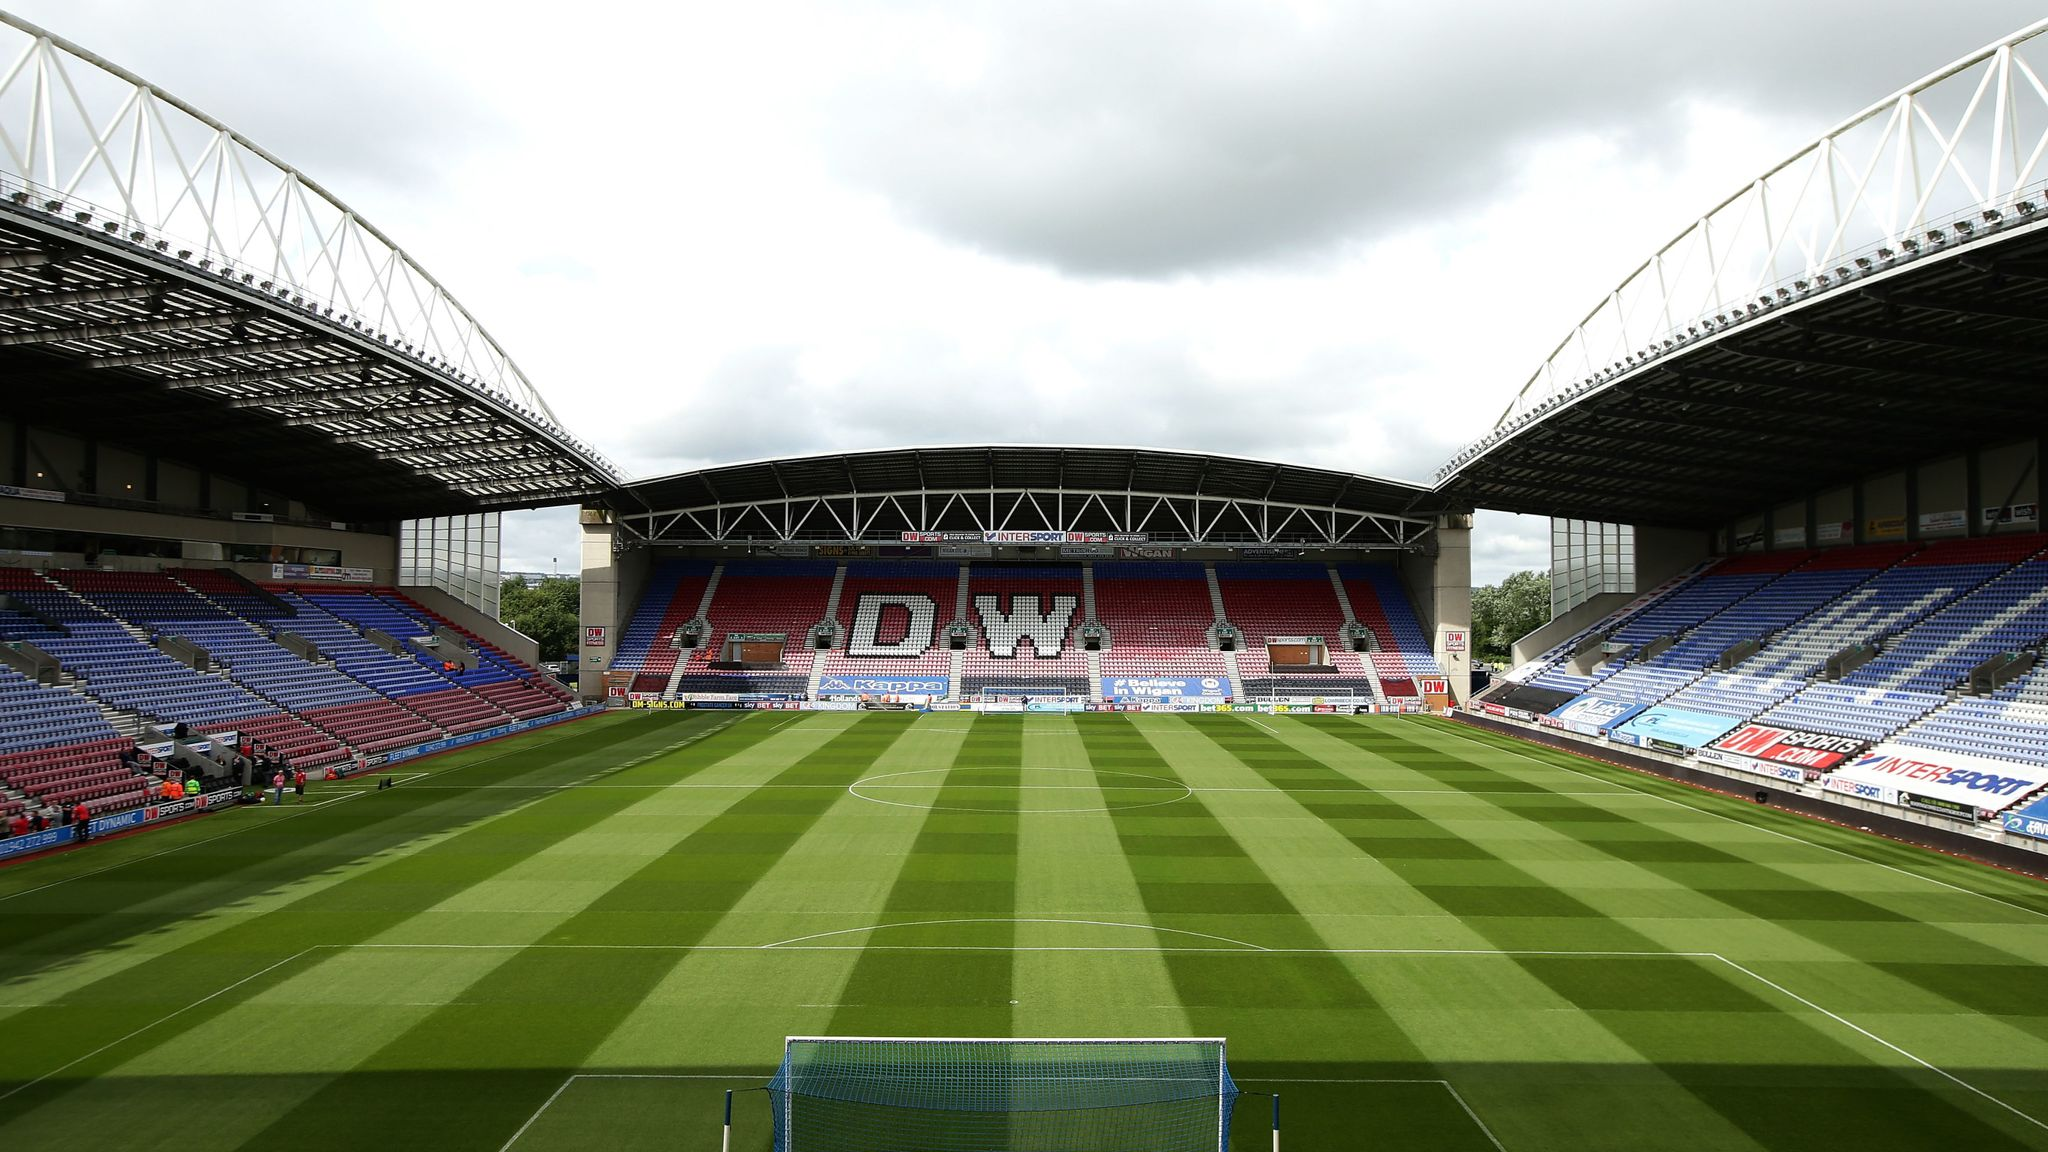 Wigan Enter Administration Efl To Hand Club 12 Point Penalty Football News Sky Sports